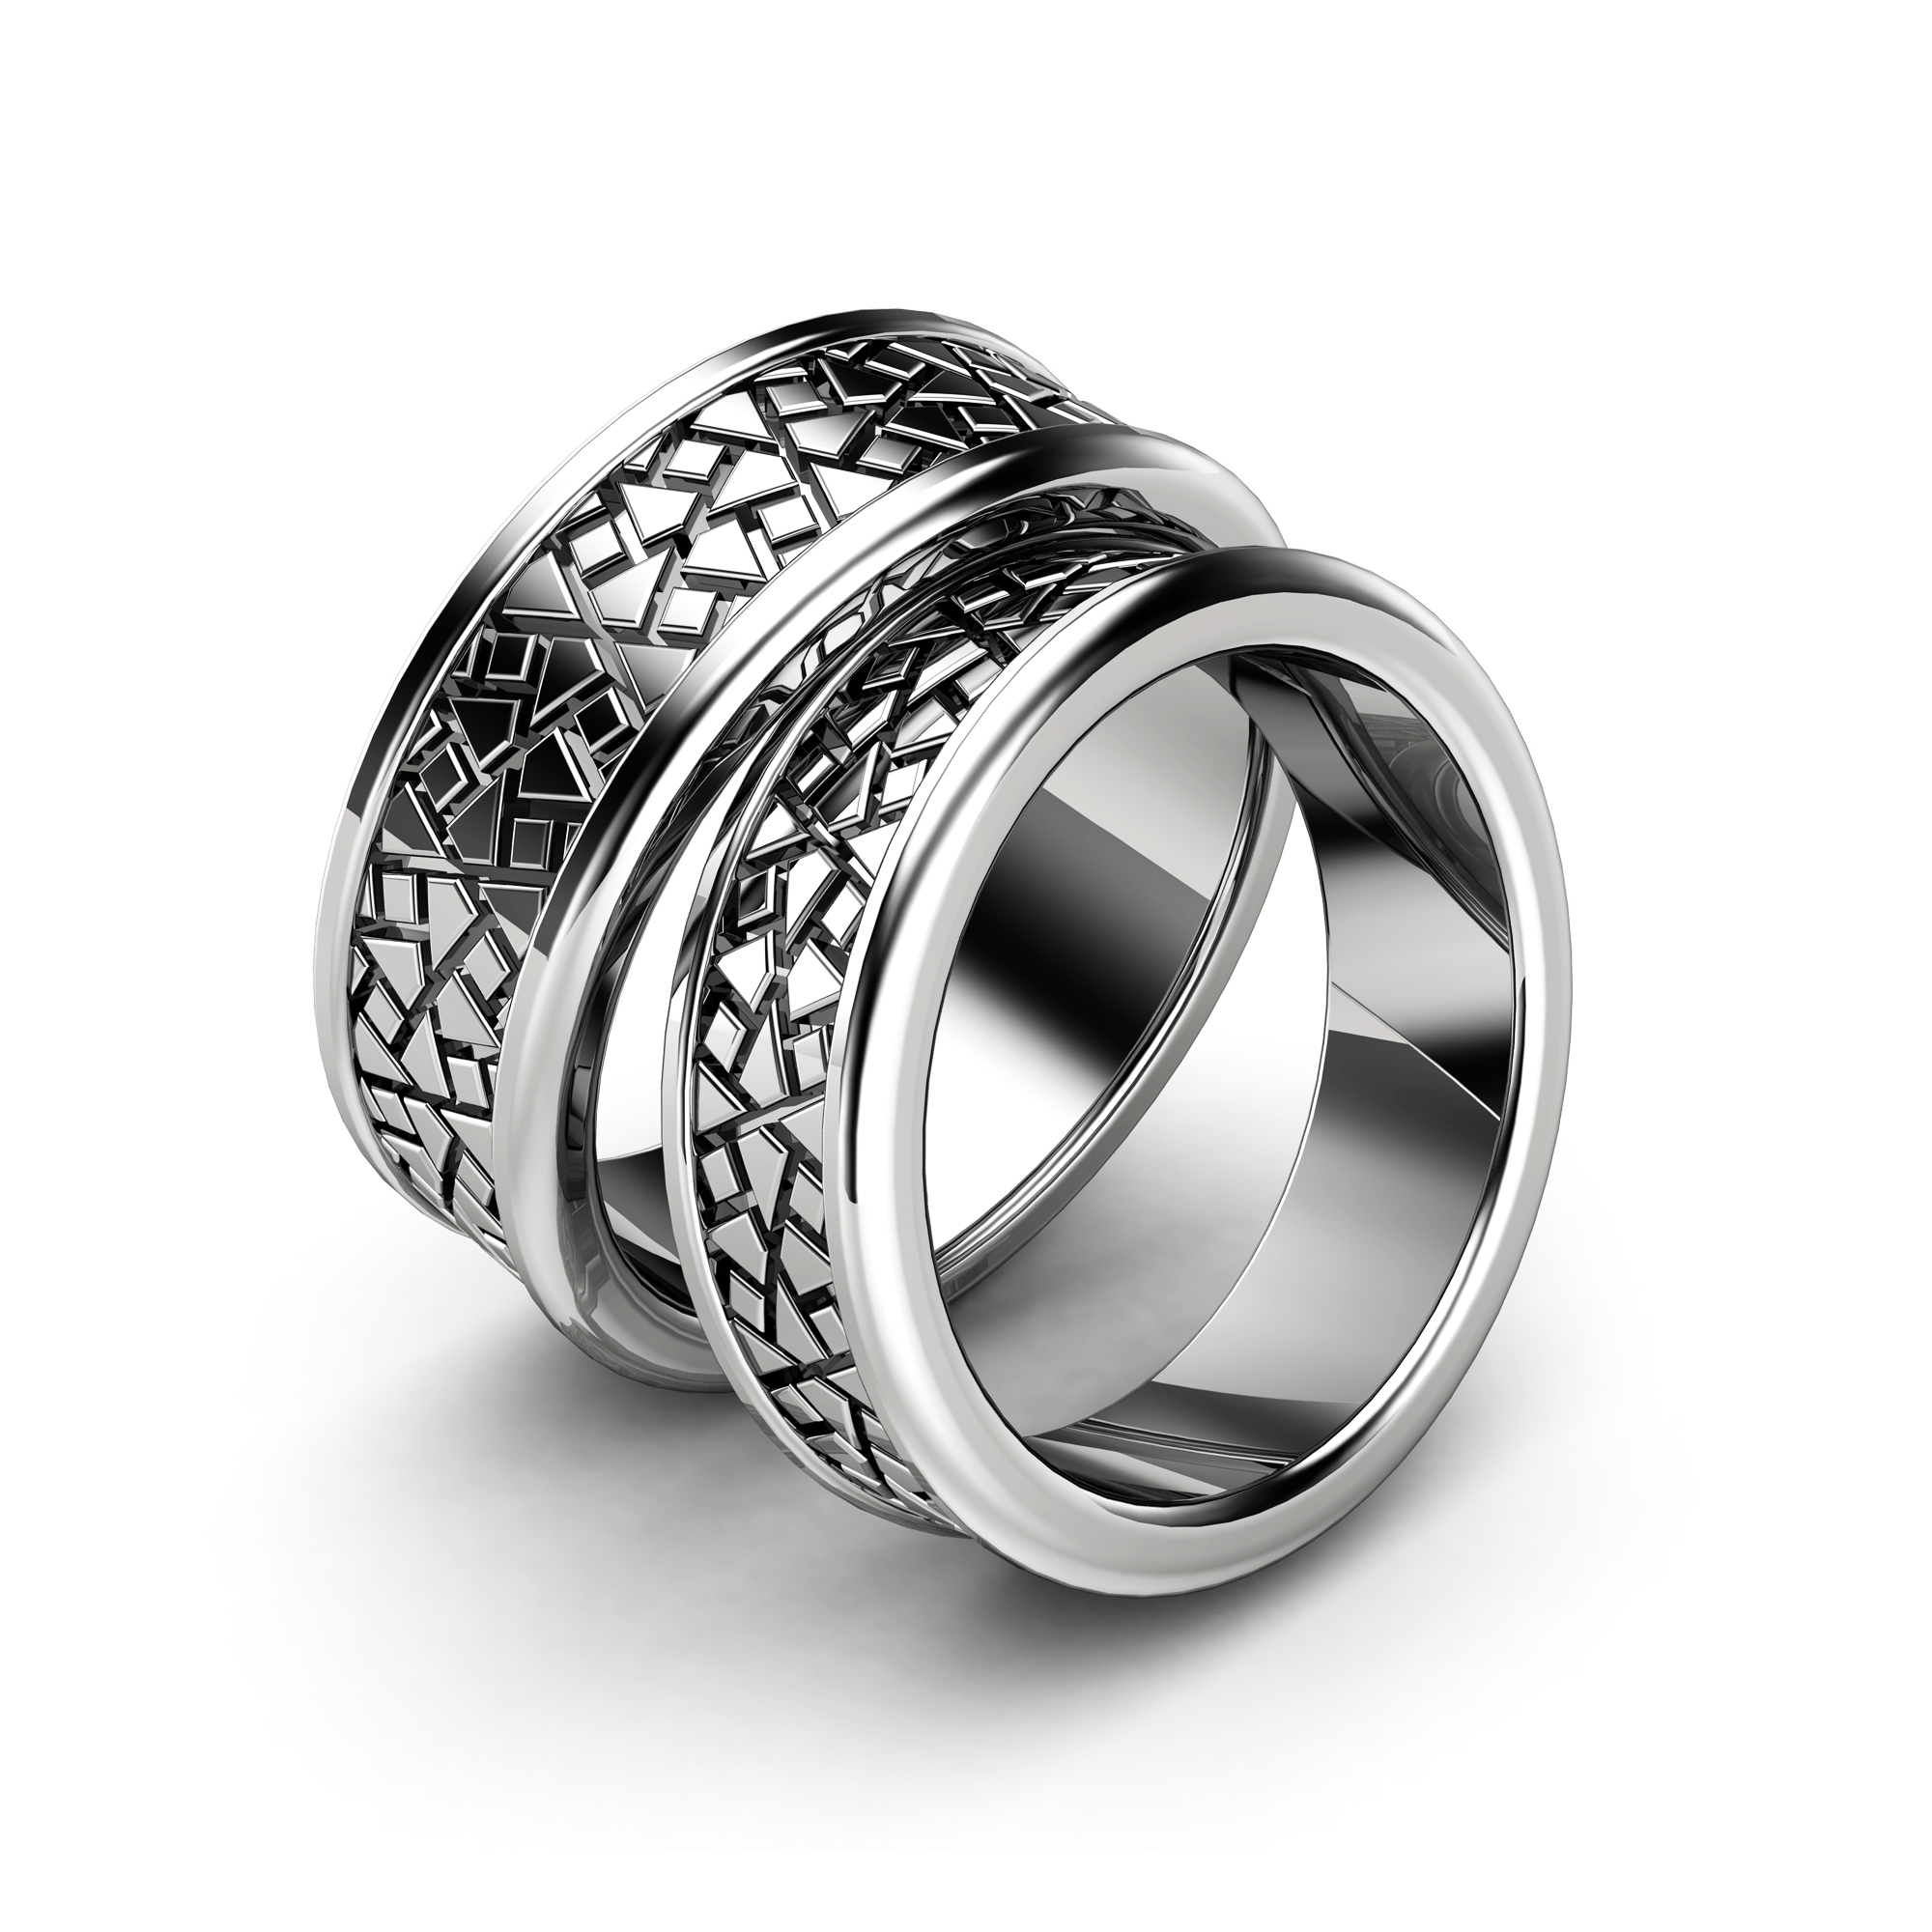 Matching Wedding Band Sets Unique Pattern Couples Rings in 14K White Gold